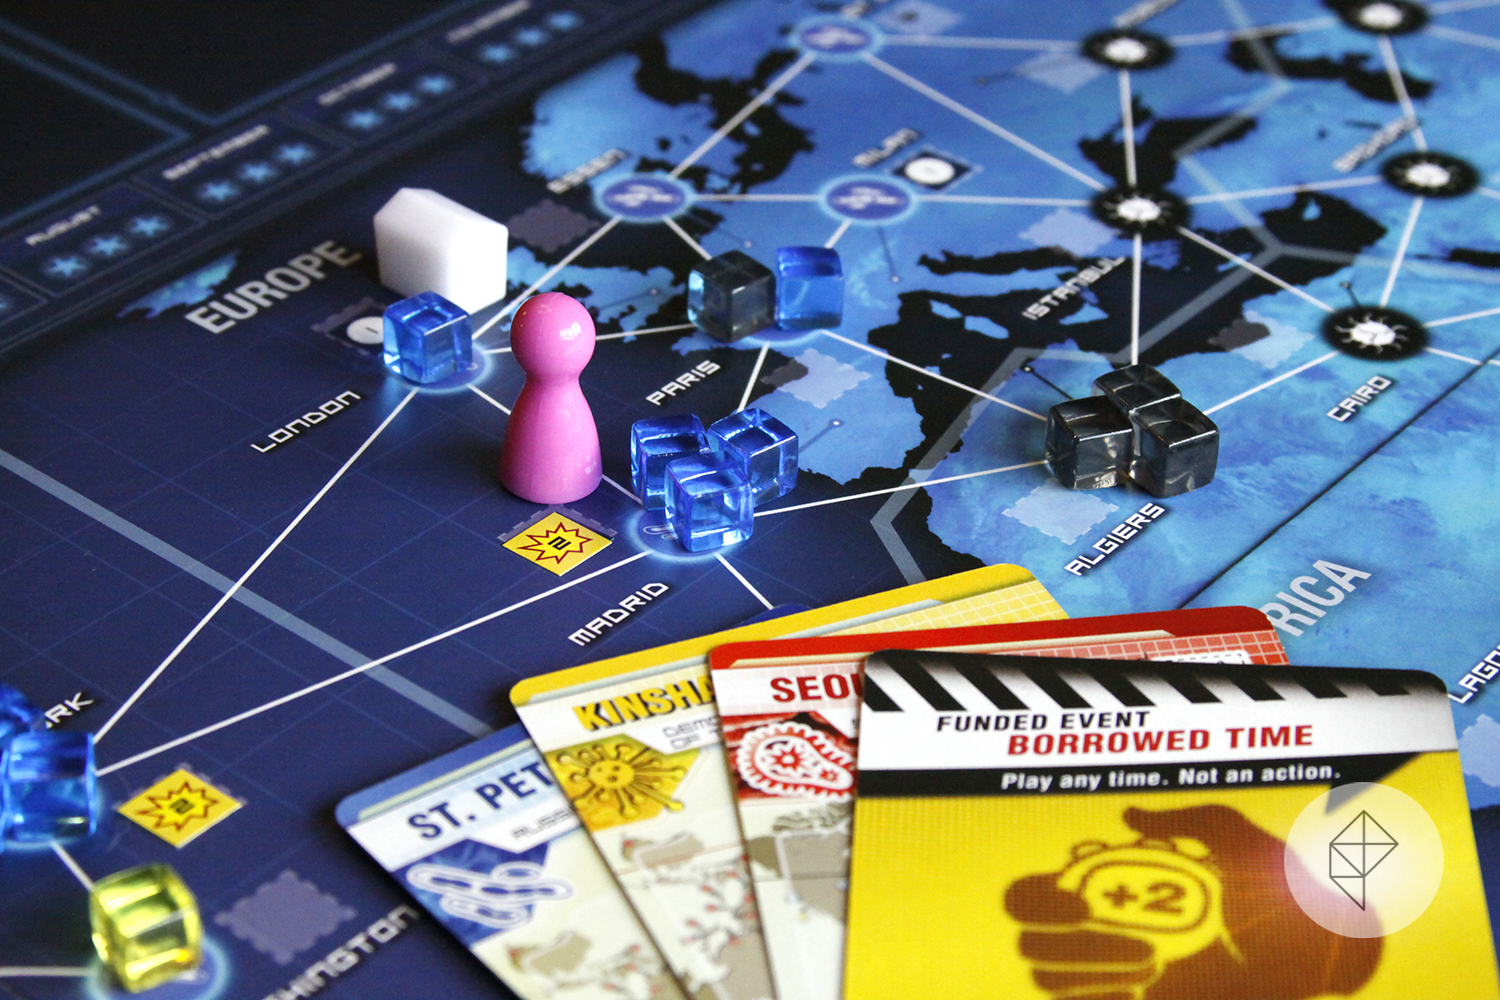 The best board games of 2015, Board Game Geek's Golden Geek awards